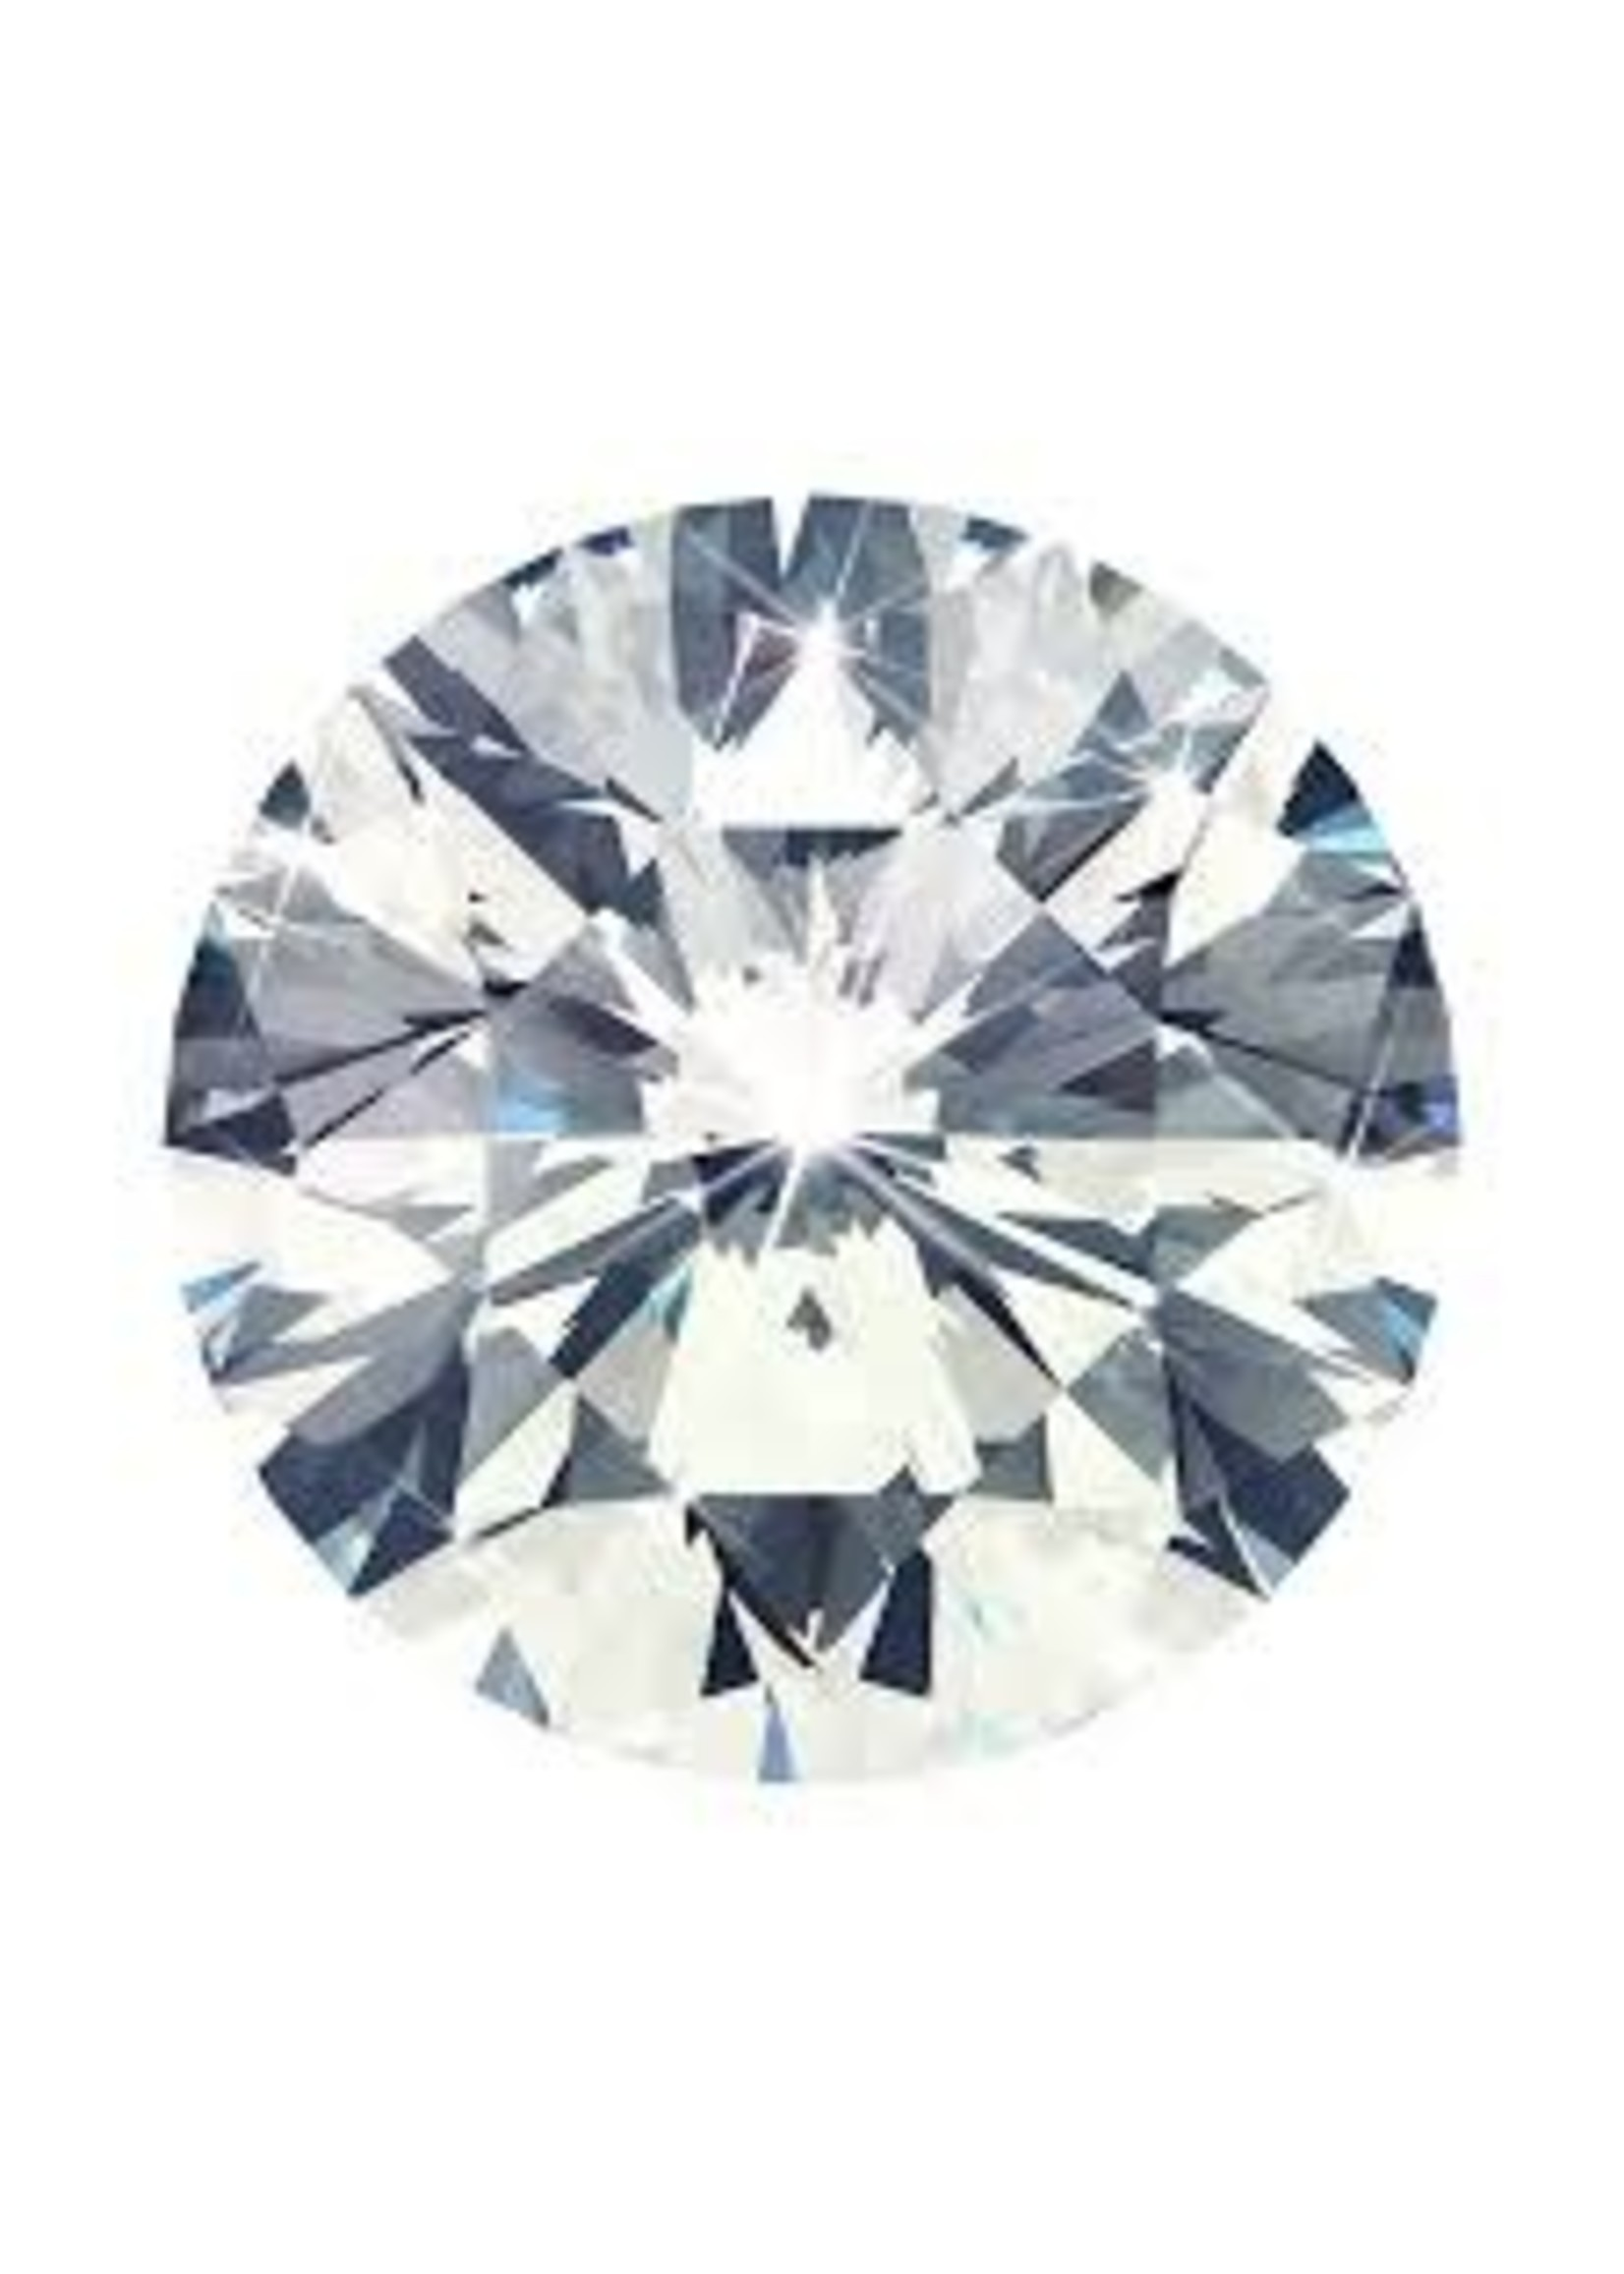 2.03CT ROUND BRILLIANT CUT DIAMOND (SI-2/I/VERY GOOD)